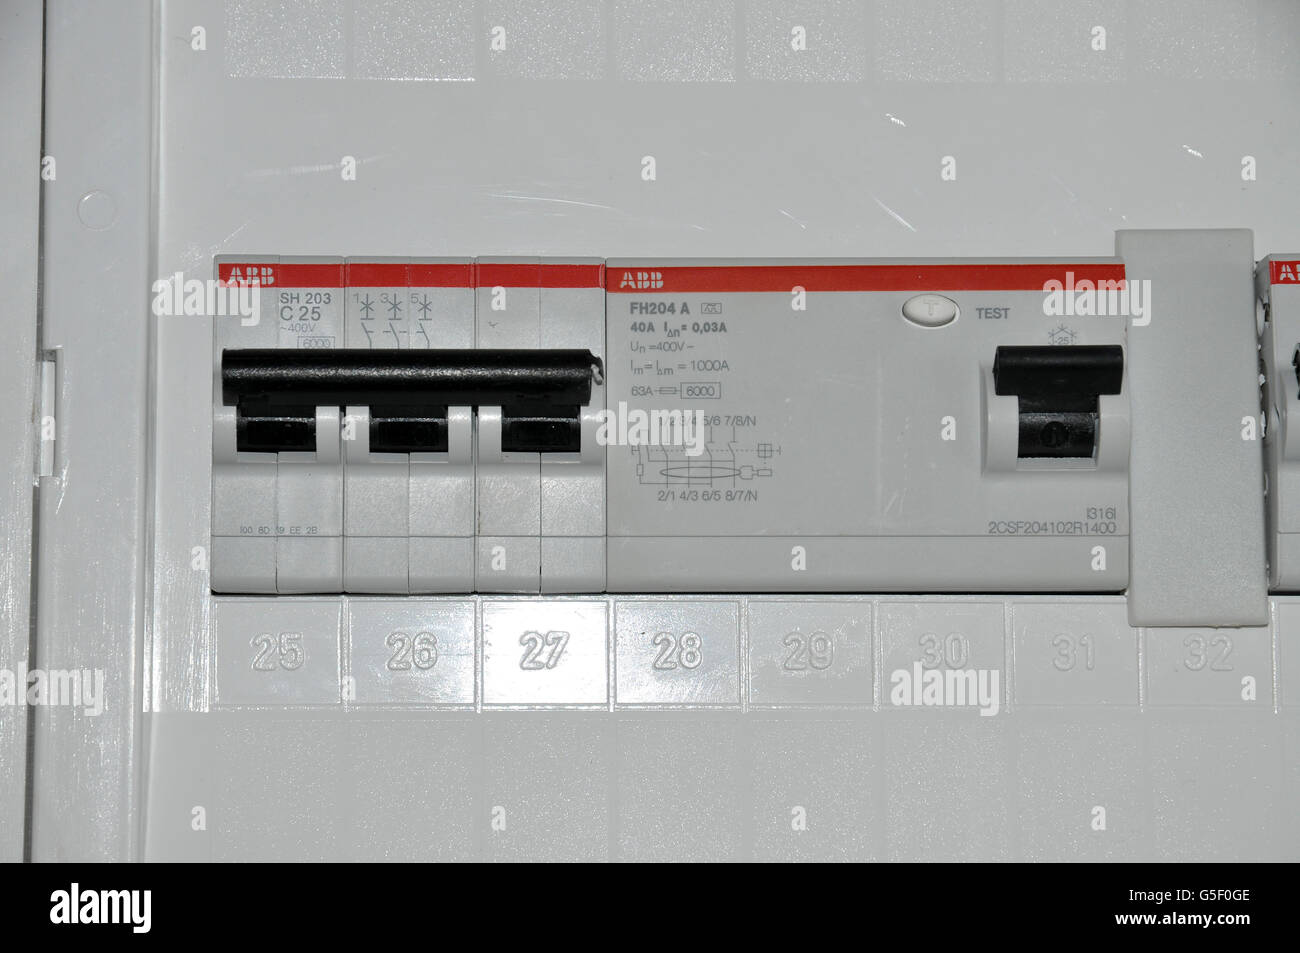 domestic fuse box stock photos \u0026 domestic fuse box stock images alamydomestic fuse box close up stock image